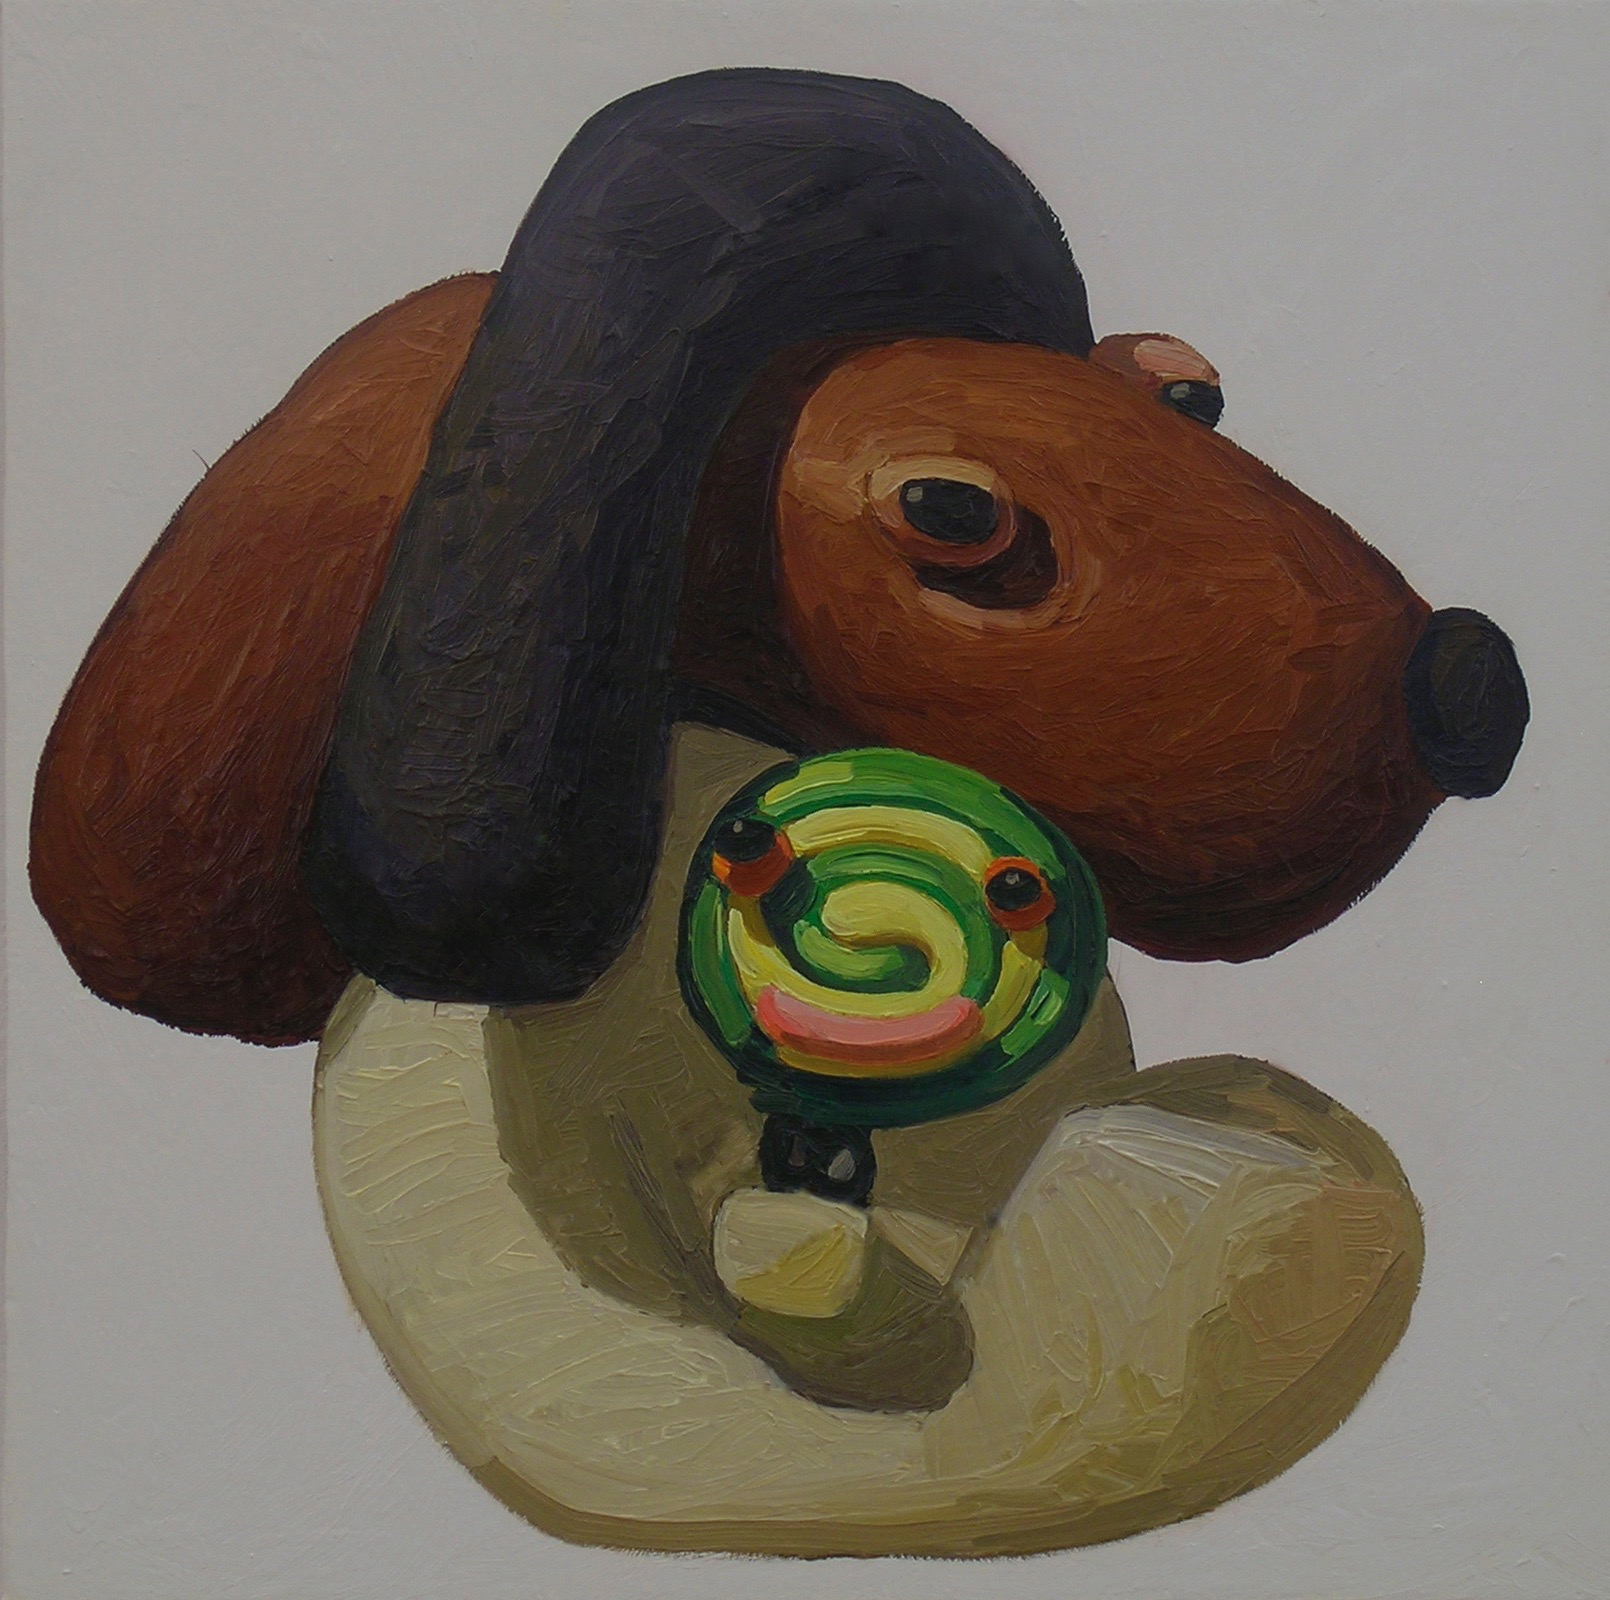 Peter Opheim   Black Brown Lolly   2013  Oil on canvas  Signed, titled, and dated by the artist,  verso   22 x 22 inches